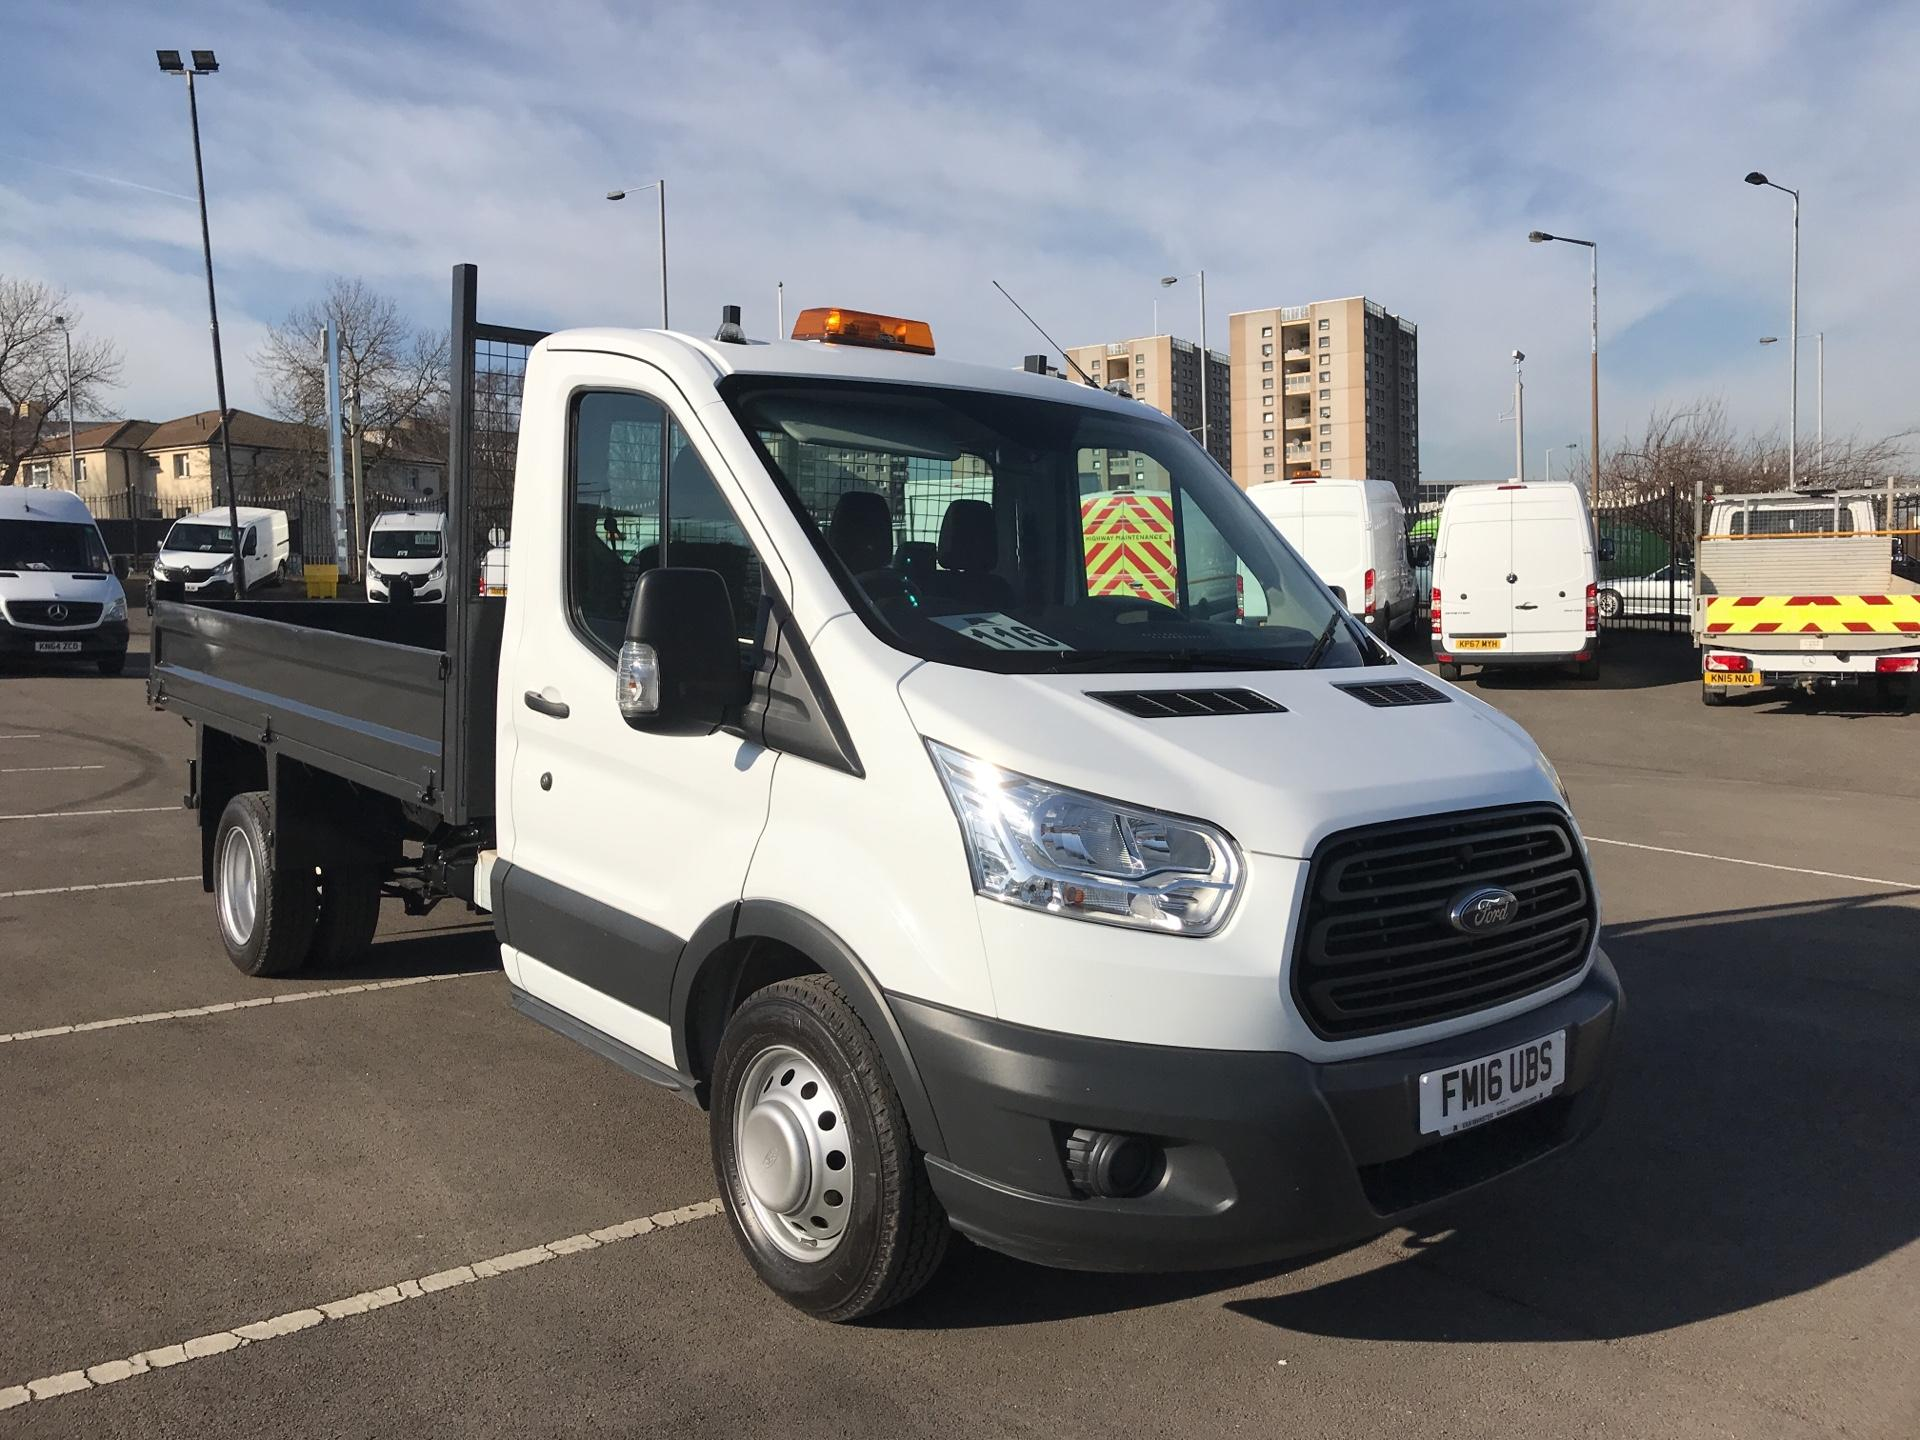 2016 Ford Transit 2.2 TDCI 125PS Single Cab Tipper Euro 5 (FM16UBS)